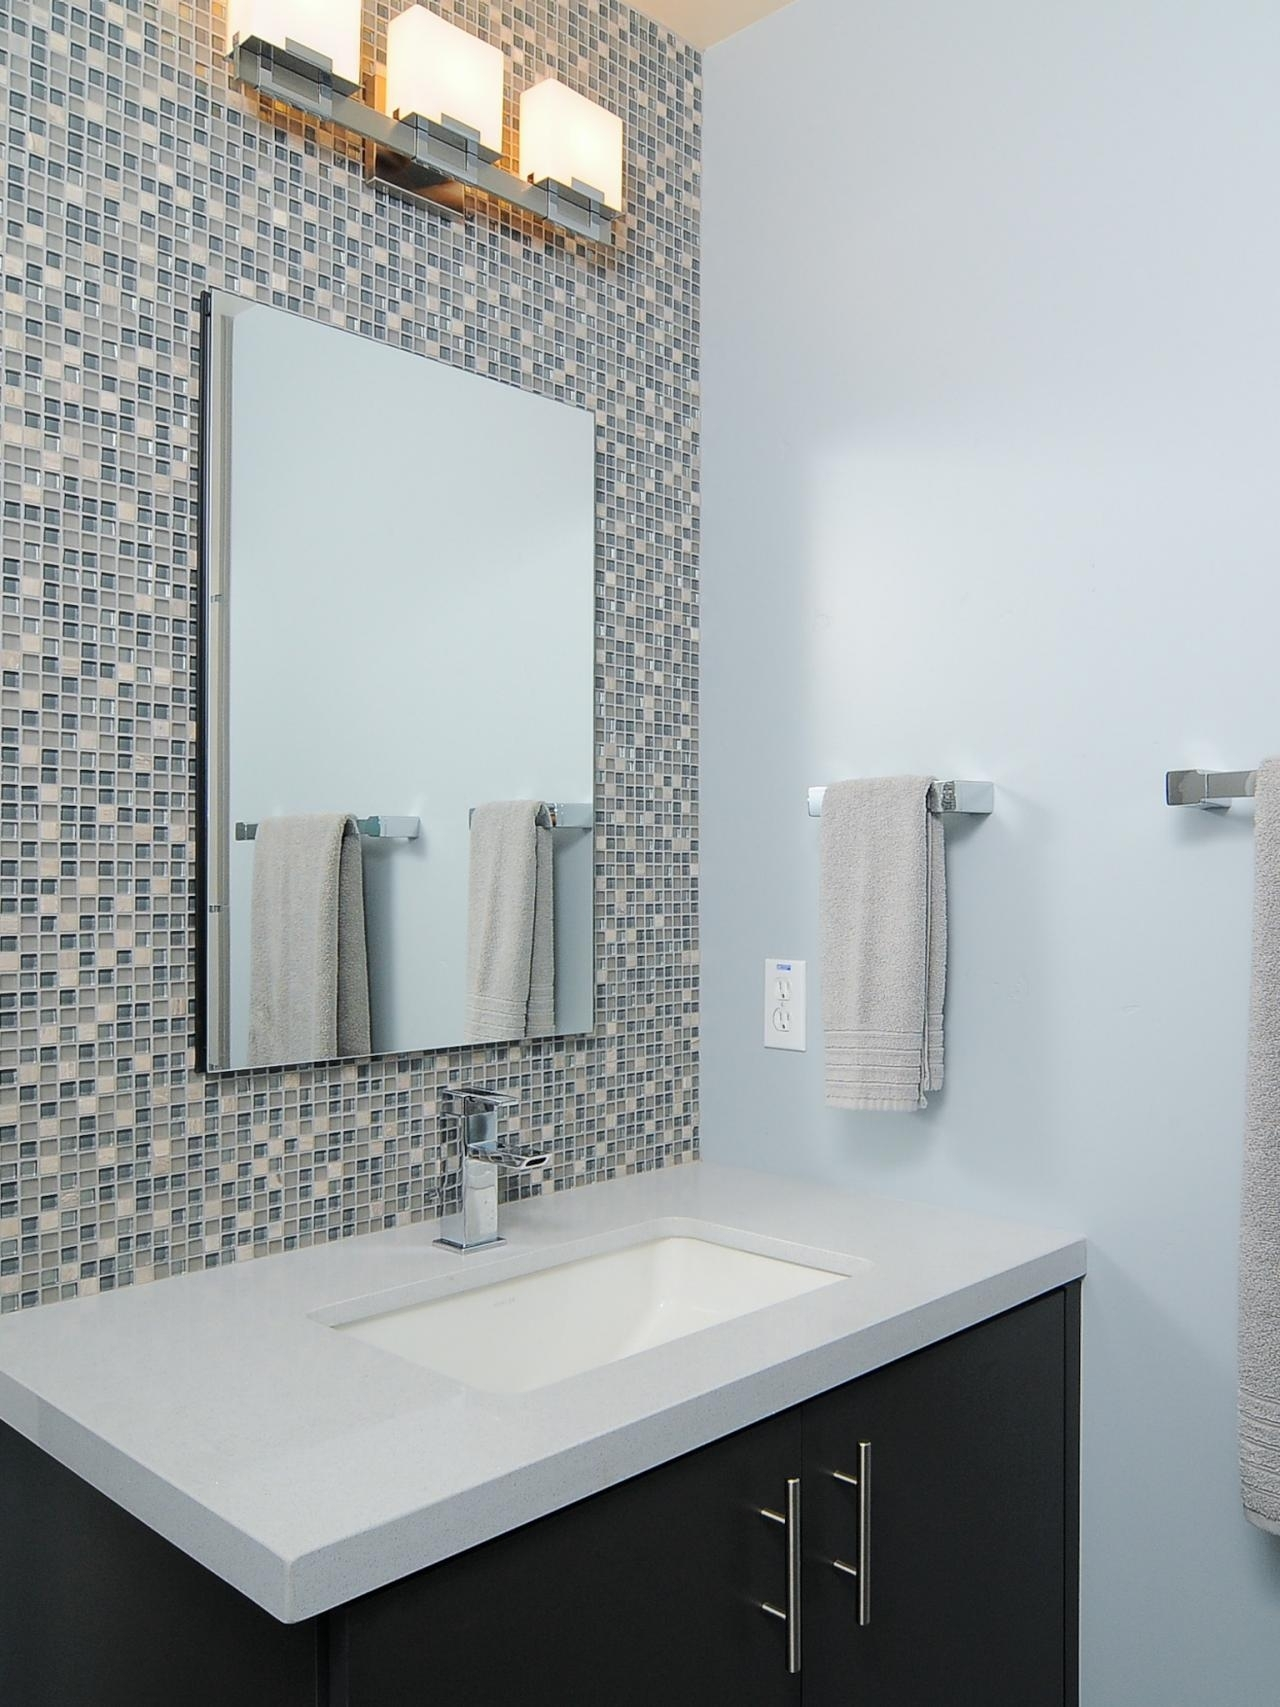 Bathroom Accent Tile | Home Design Inspiration Within Current Wall Accents For Bathroom (View 7 of 15)